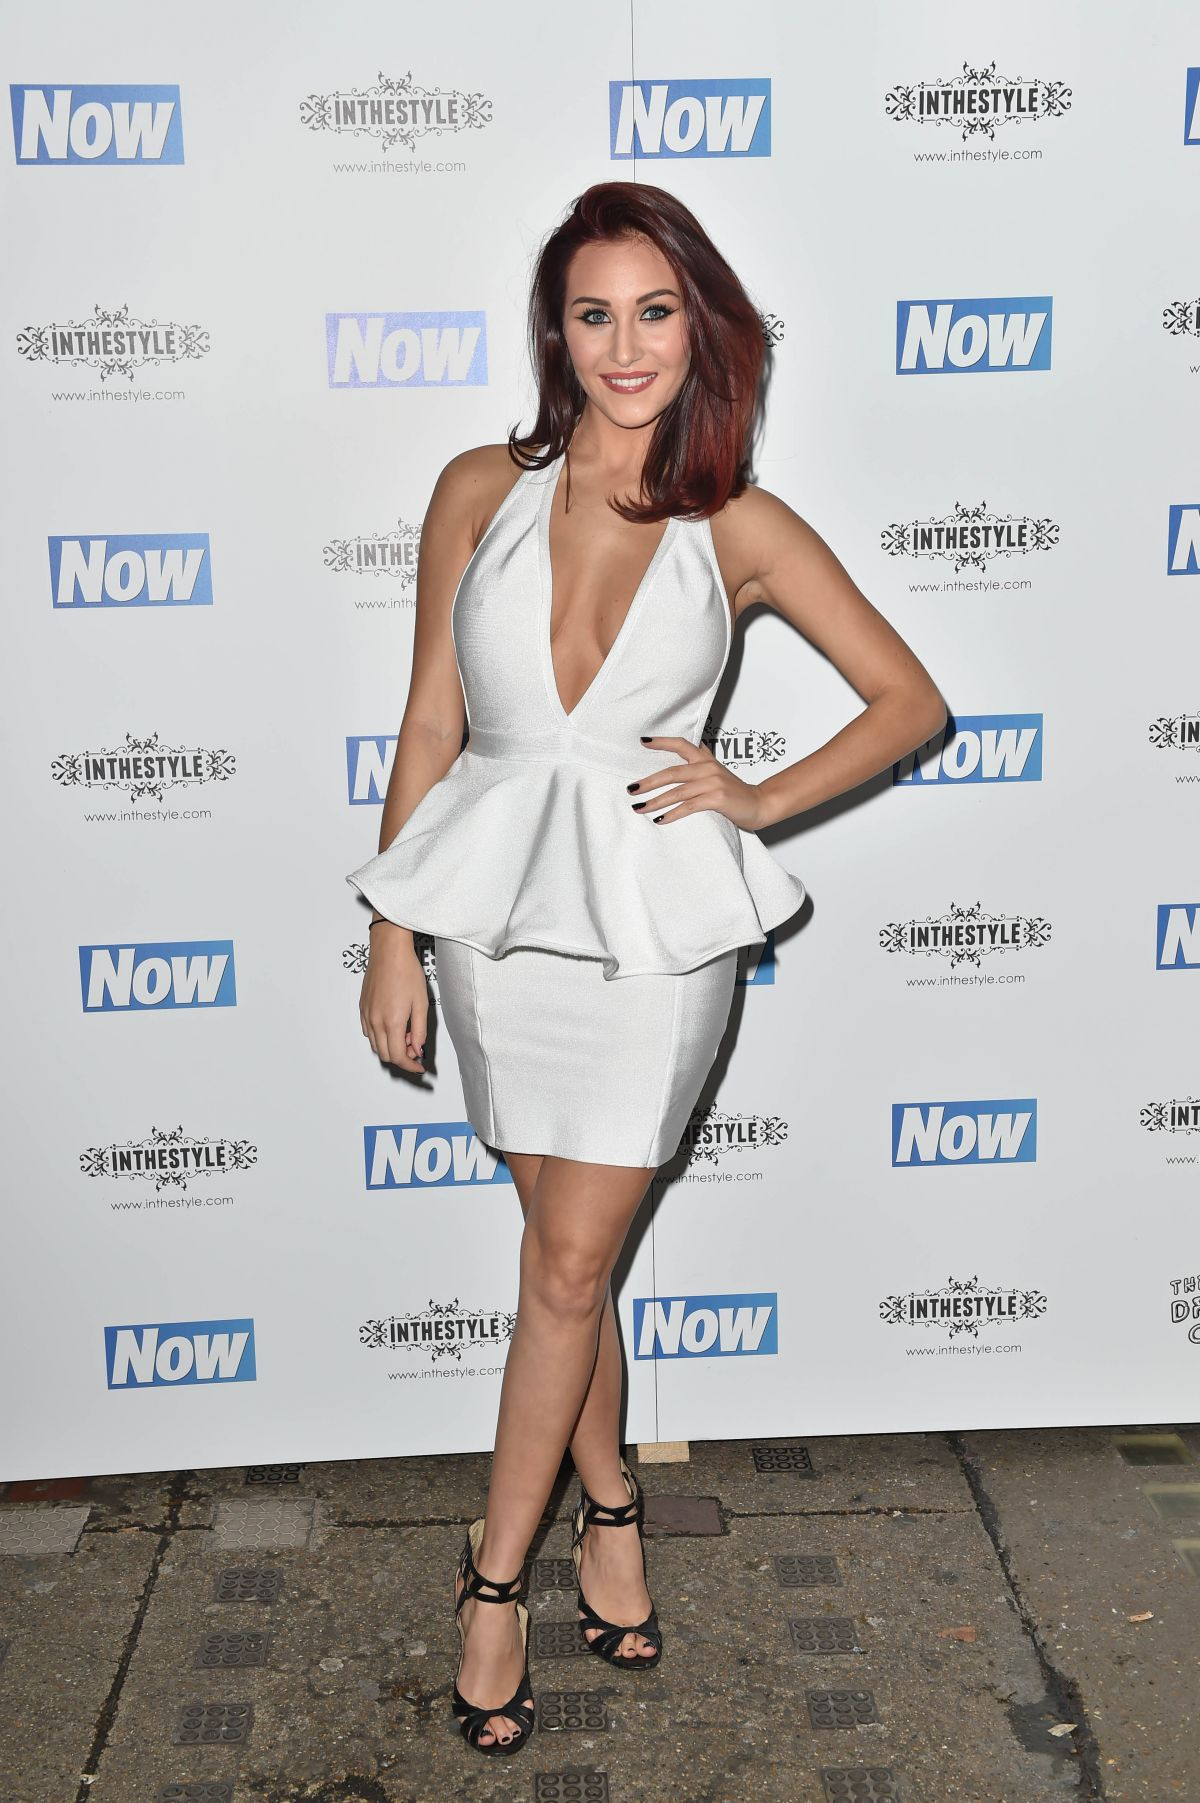 CHLOE GOODMAN at Now Christmas Party in London